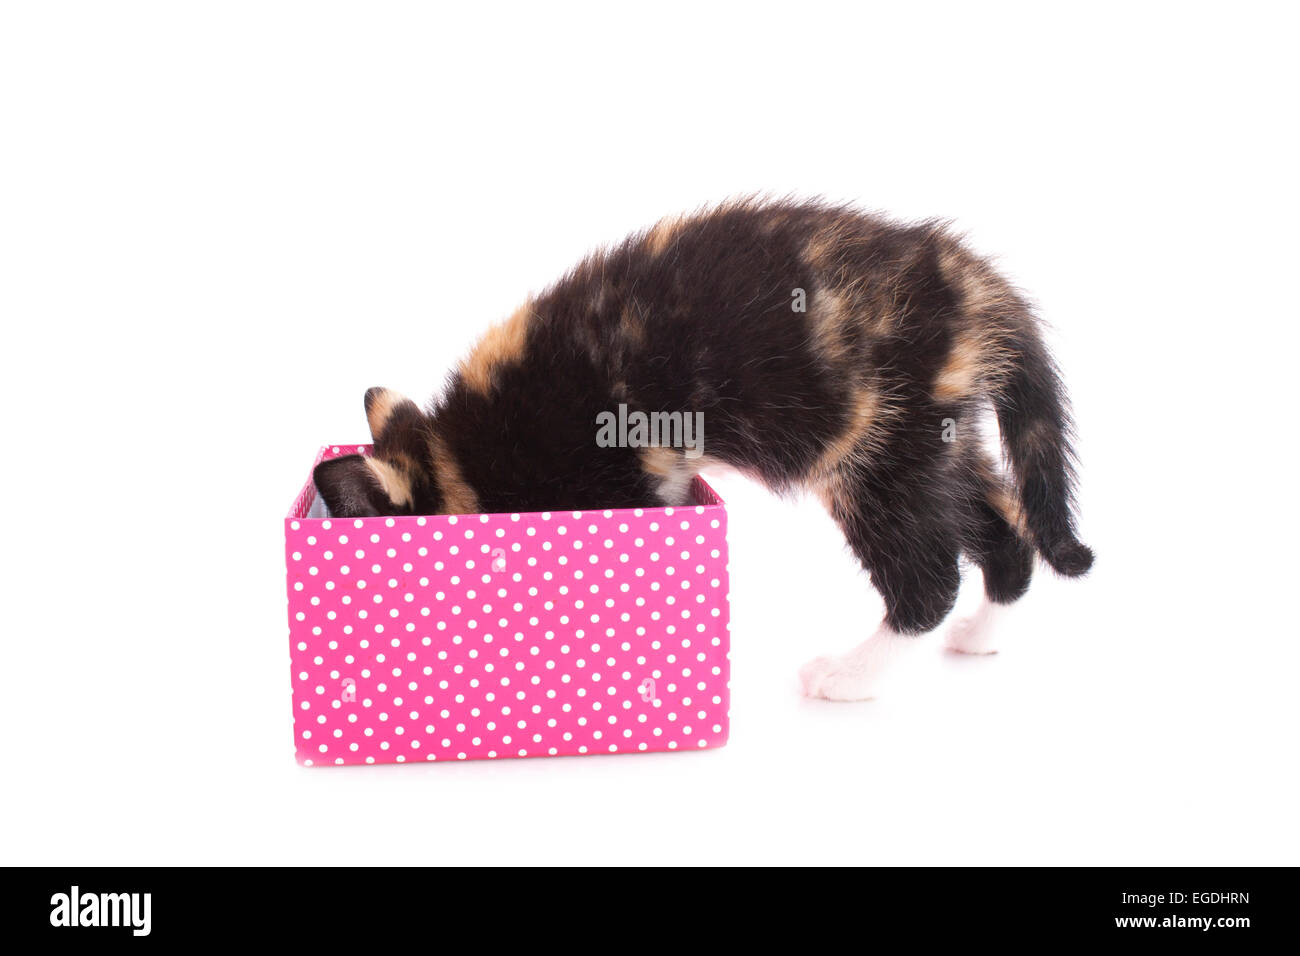 kitten search in a box isolated on white - Stock Image